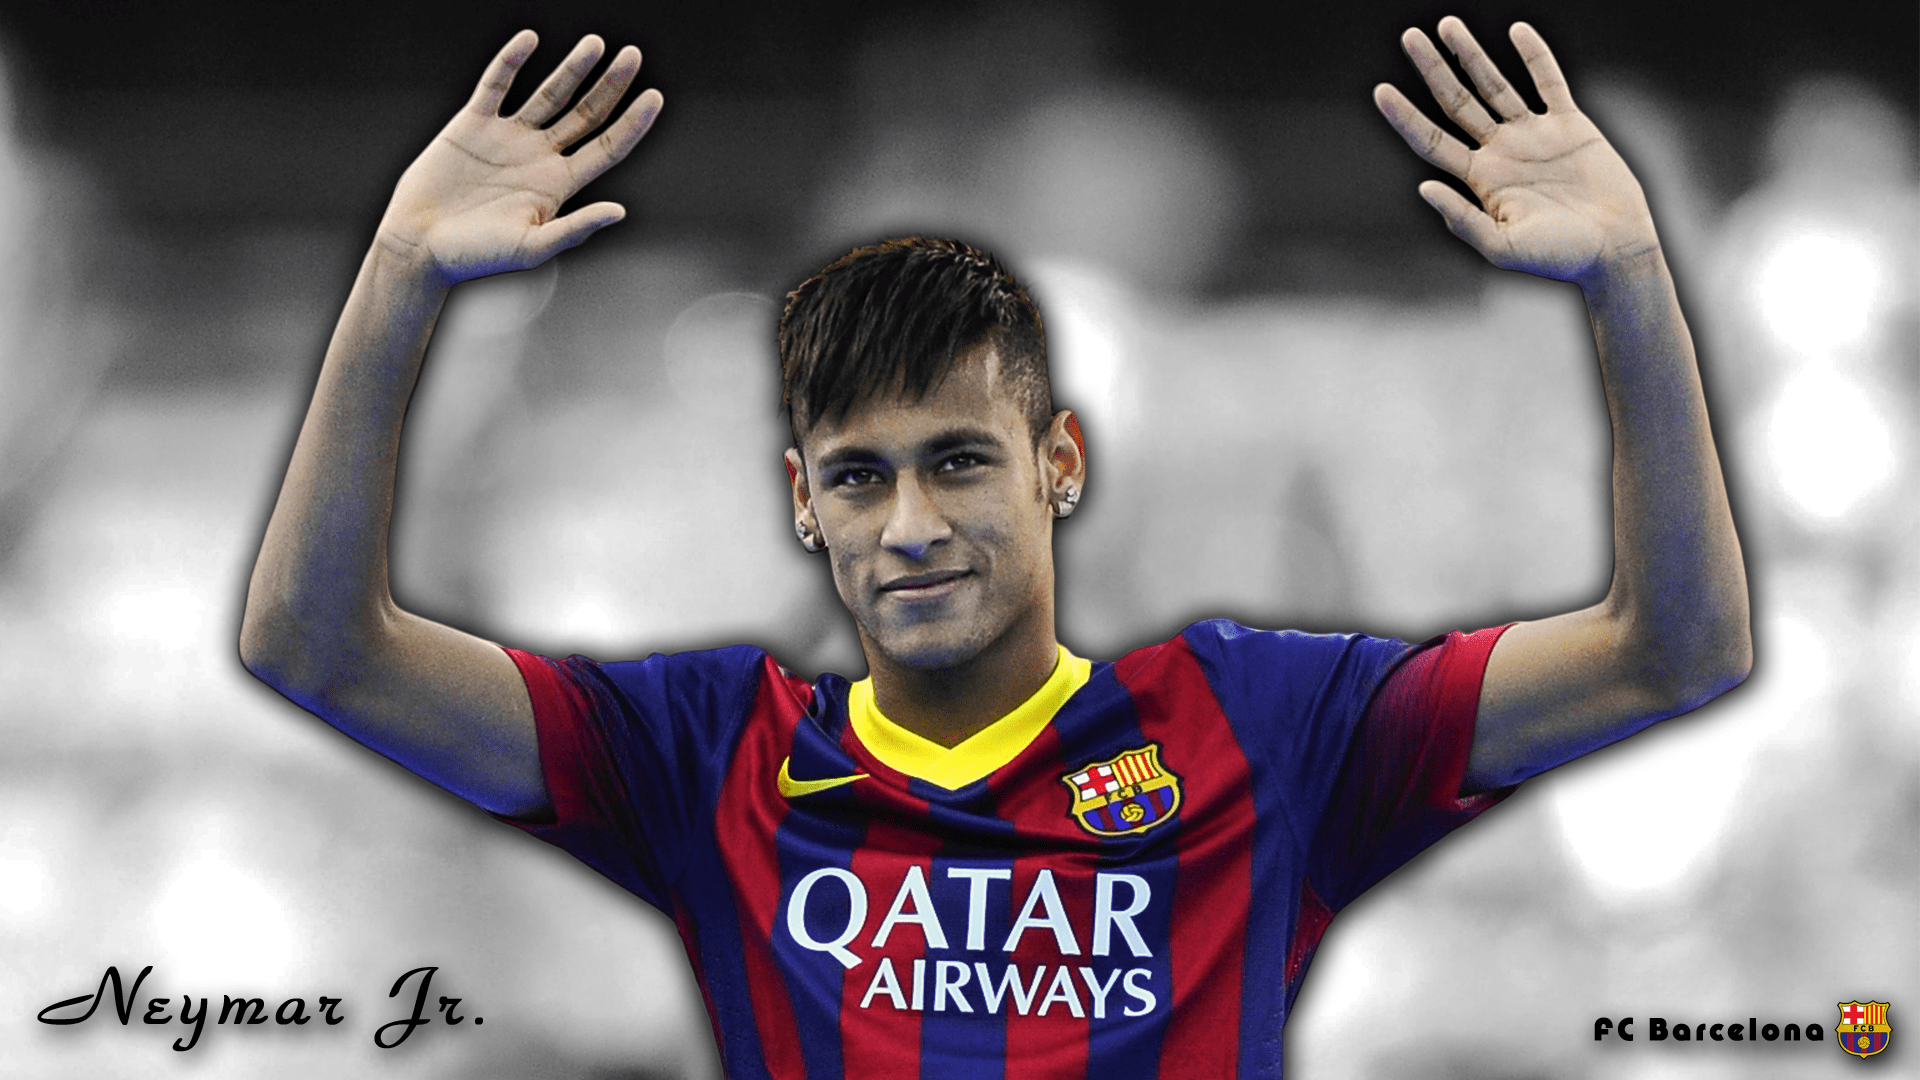 Facebook Wallpaper Quotes From Soccer Players Neymar Hd Wallpapers Popopics Com